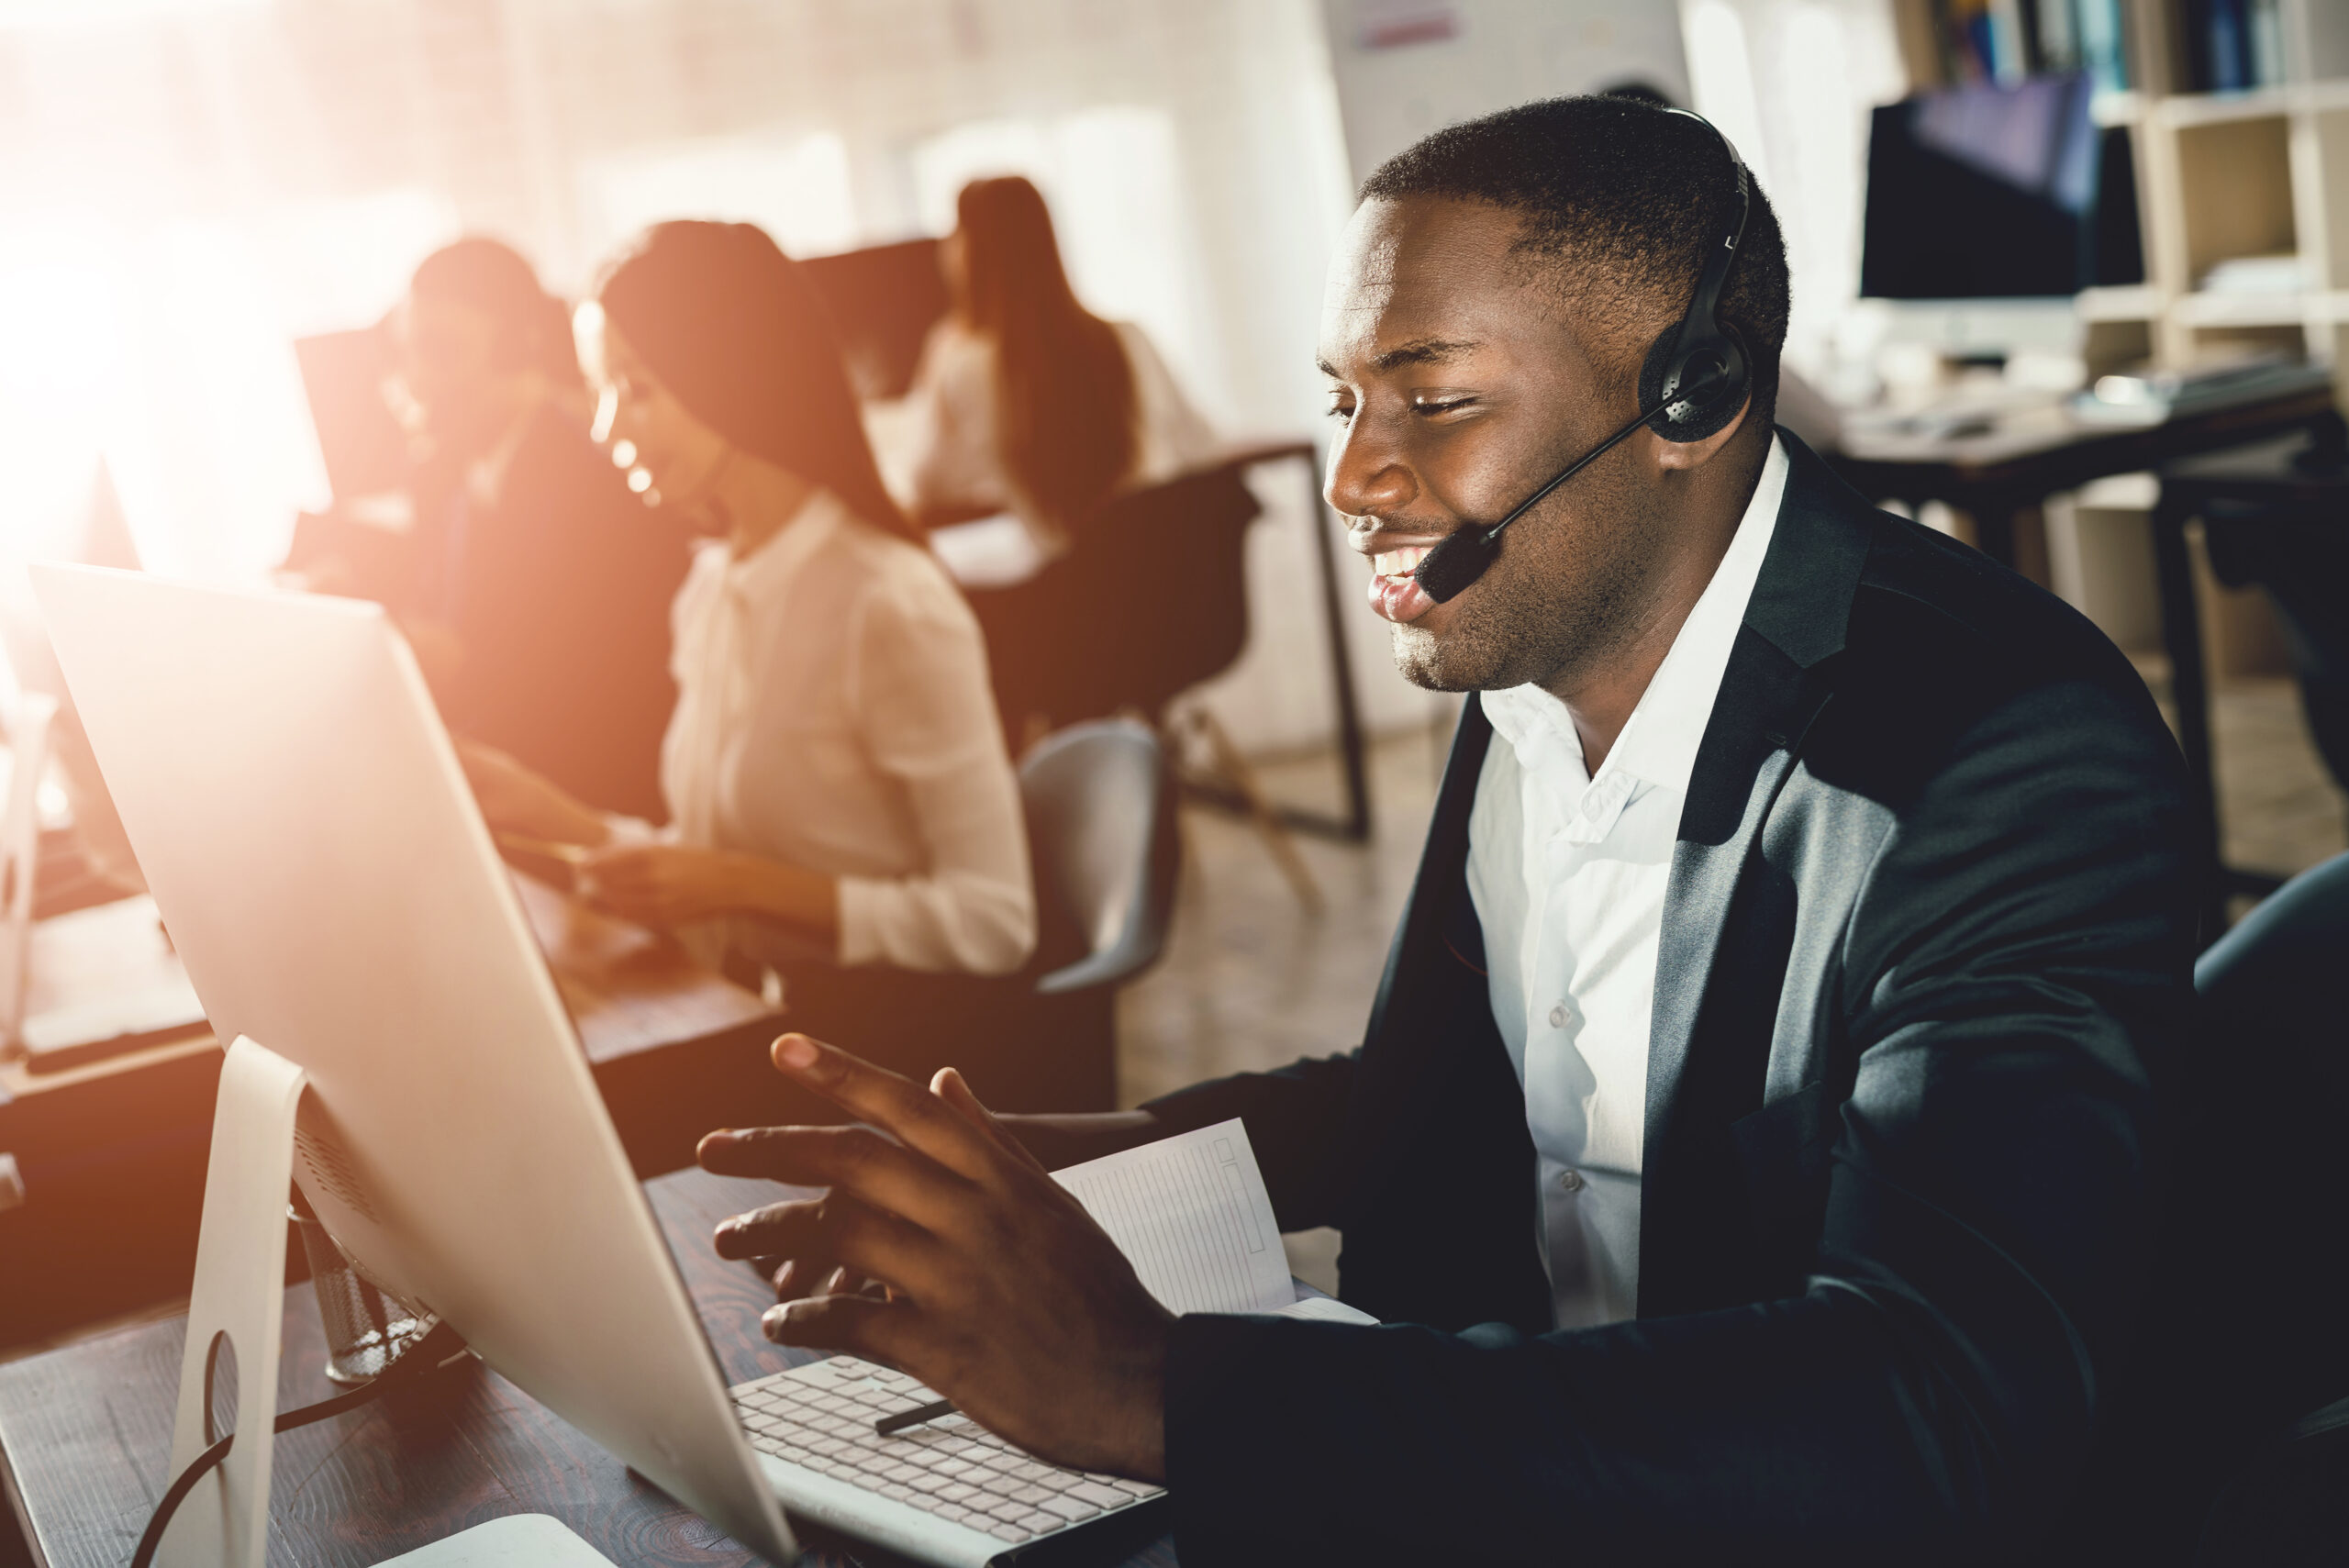 A black guy works in a call center. He has headphones on which they talk with customers. He is an operator and he answers questions.